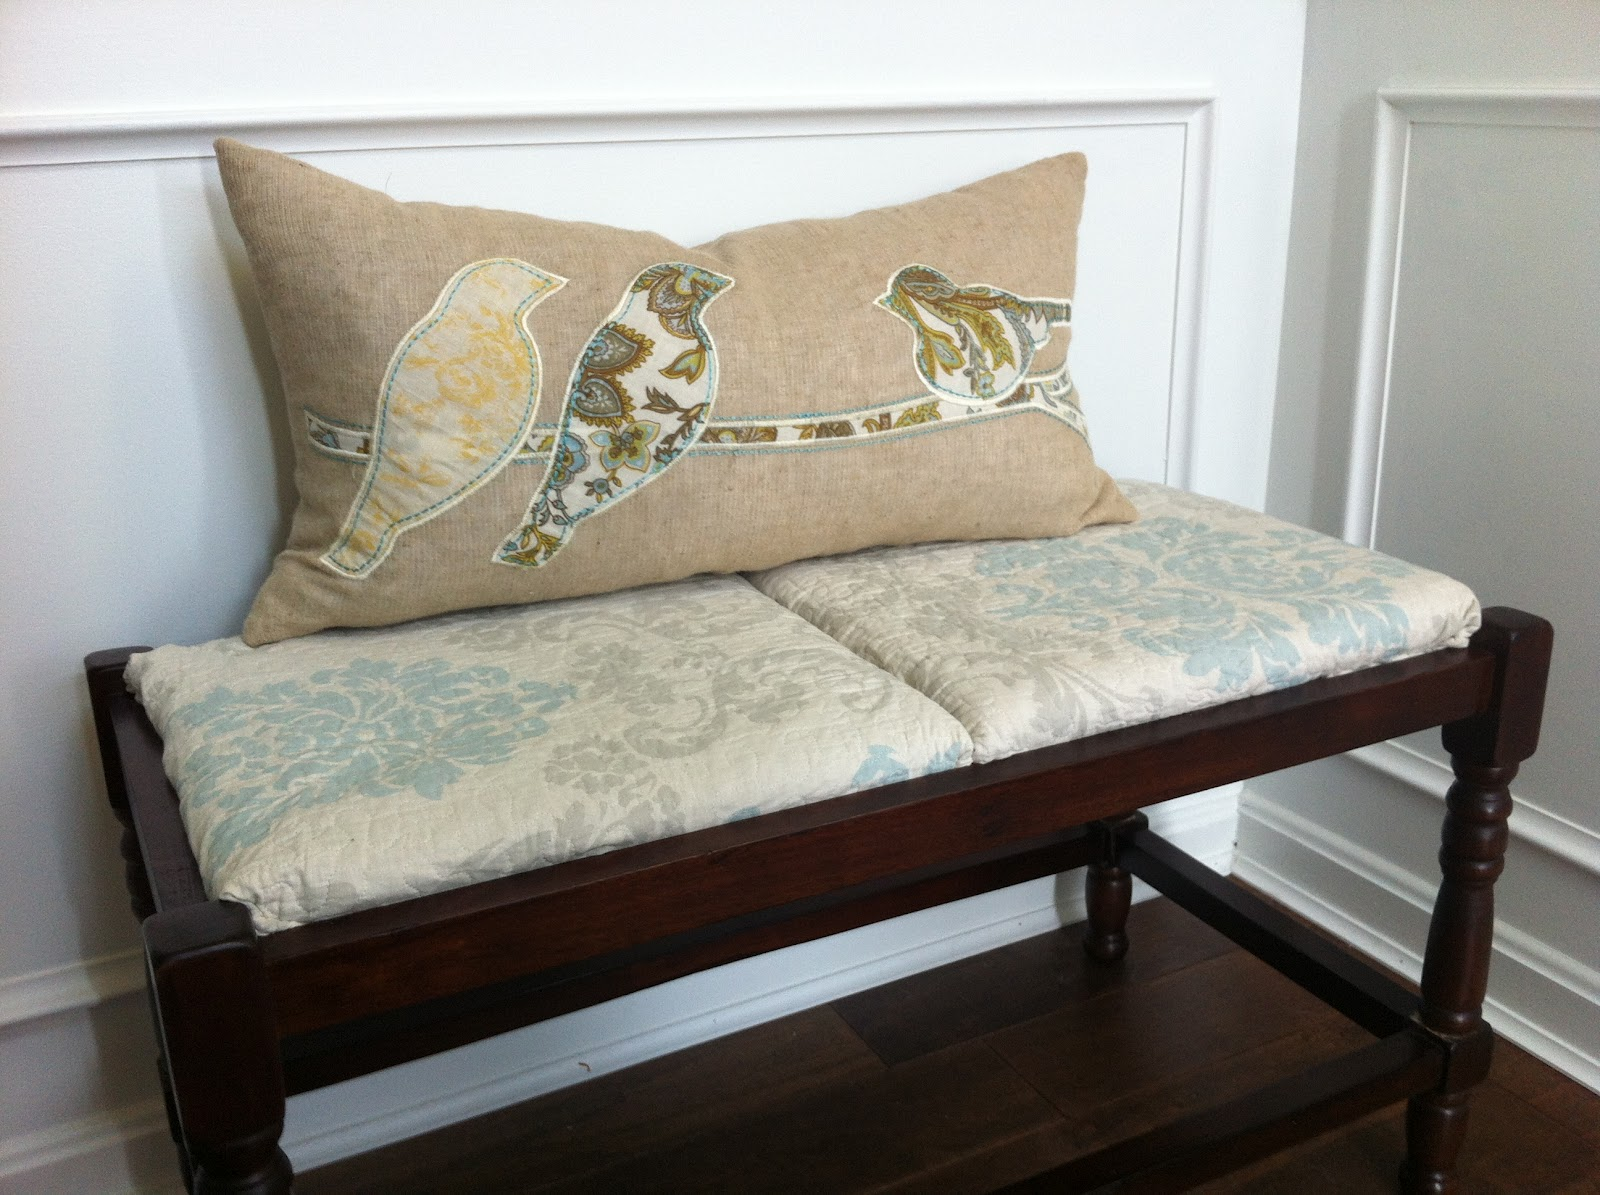 rush chair seat cushions. this is a very easy \u0027cheaters\u0027 version of upholstering rush seat bench quickly using ready-made materials. it can actually be used for any chair cushions